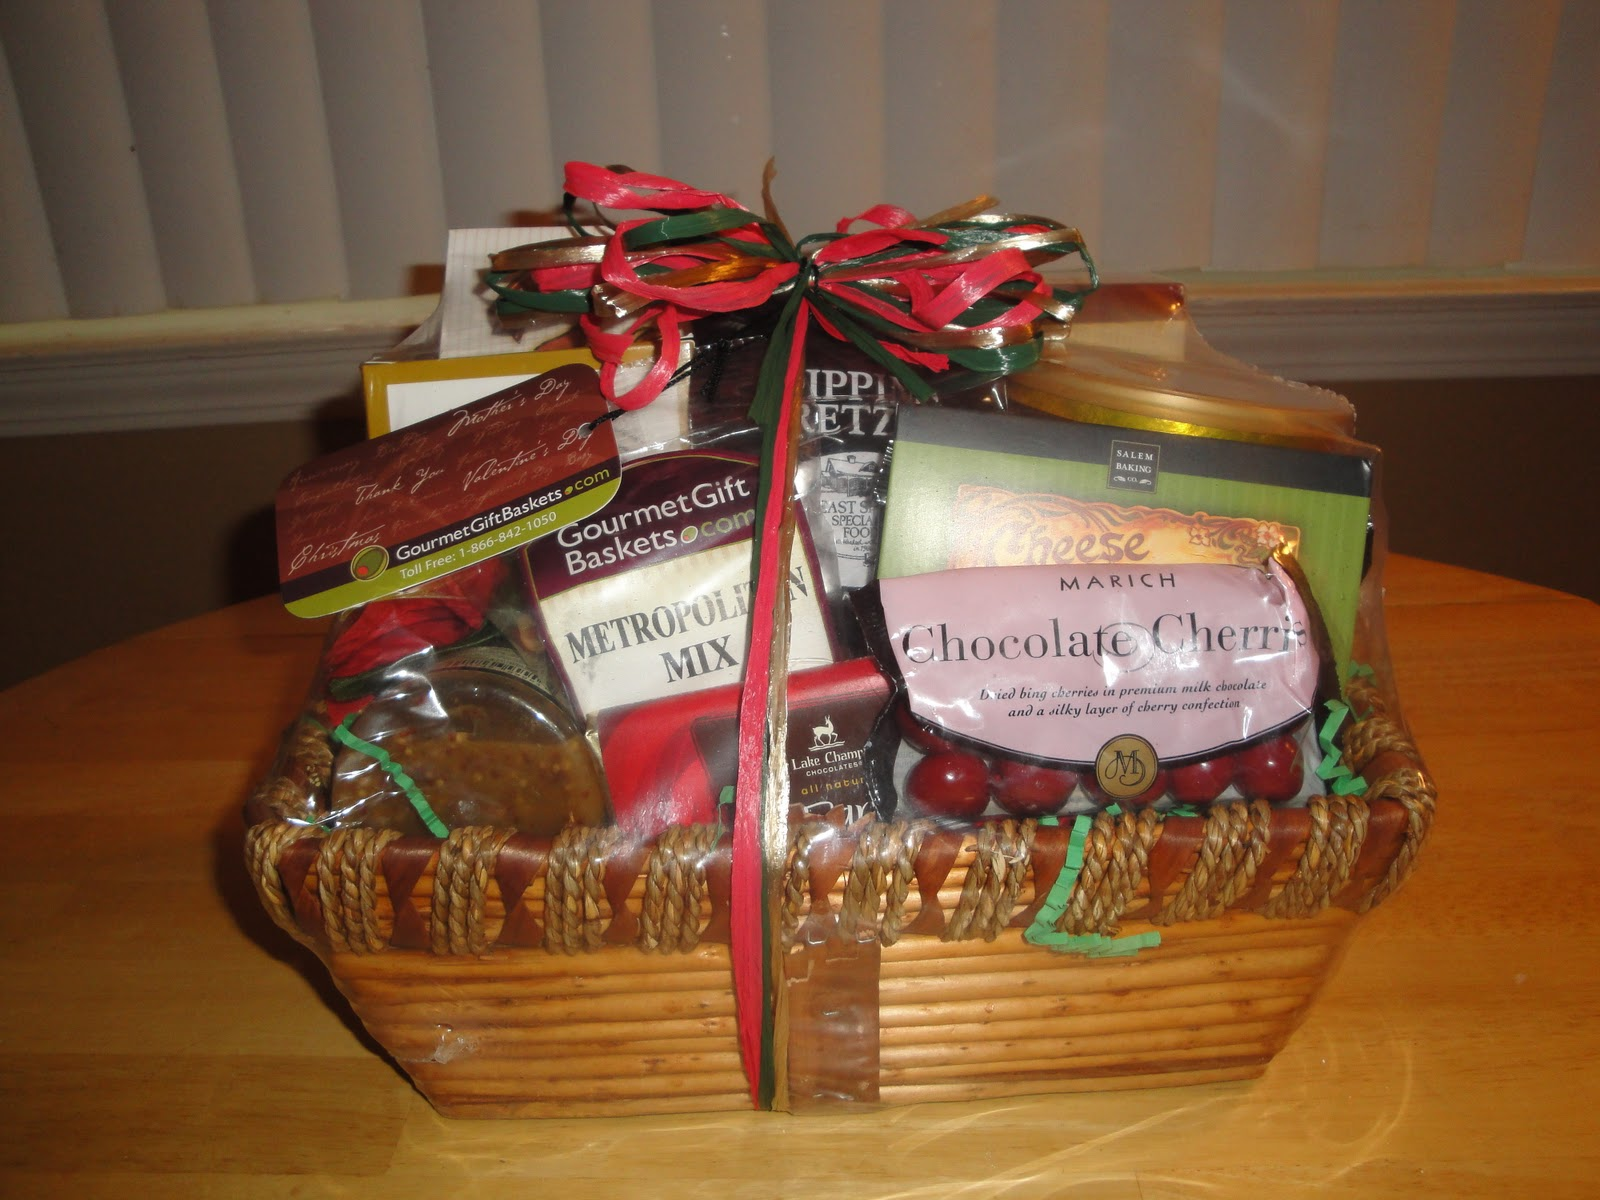 Gourmet Gift Baskets Christmas Gift Baskets Review Holiday